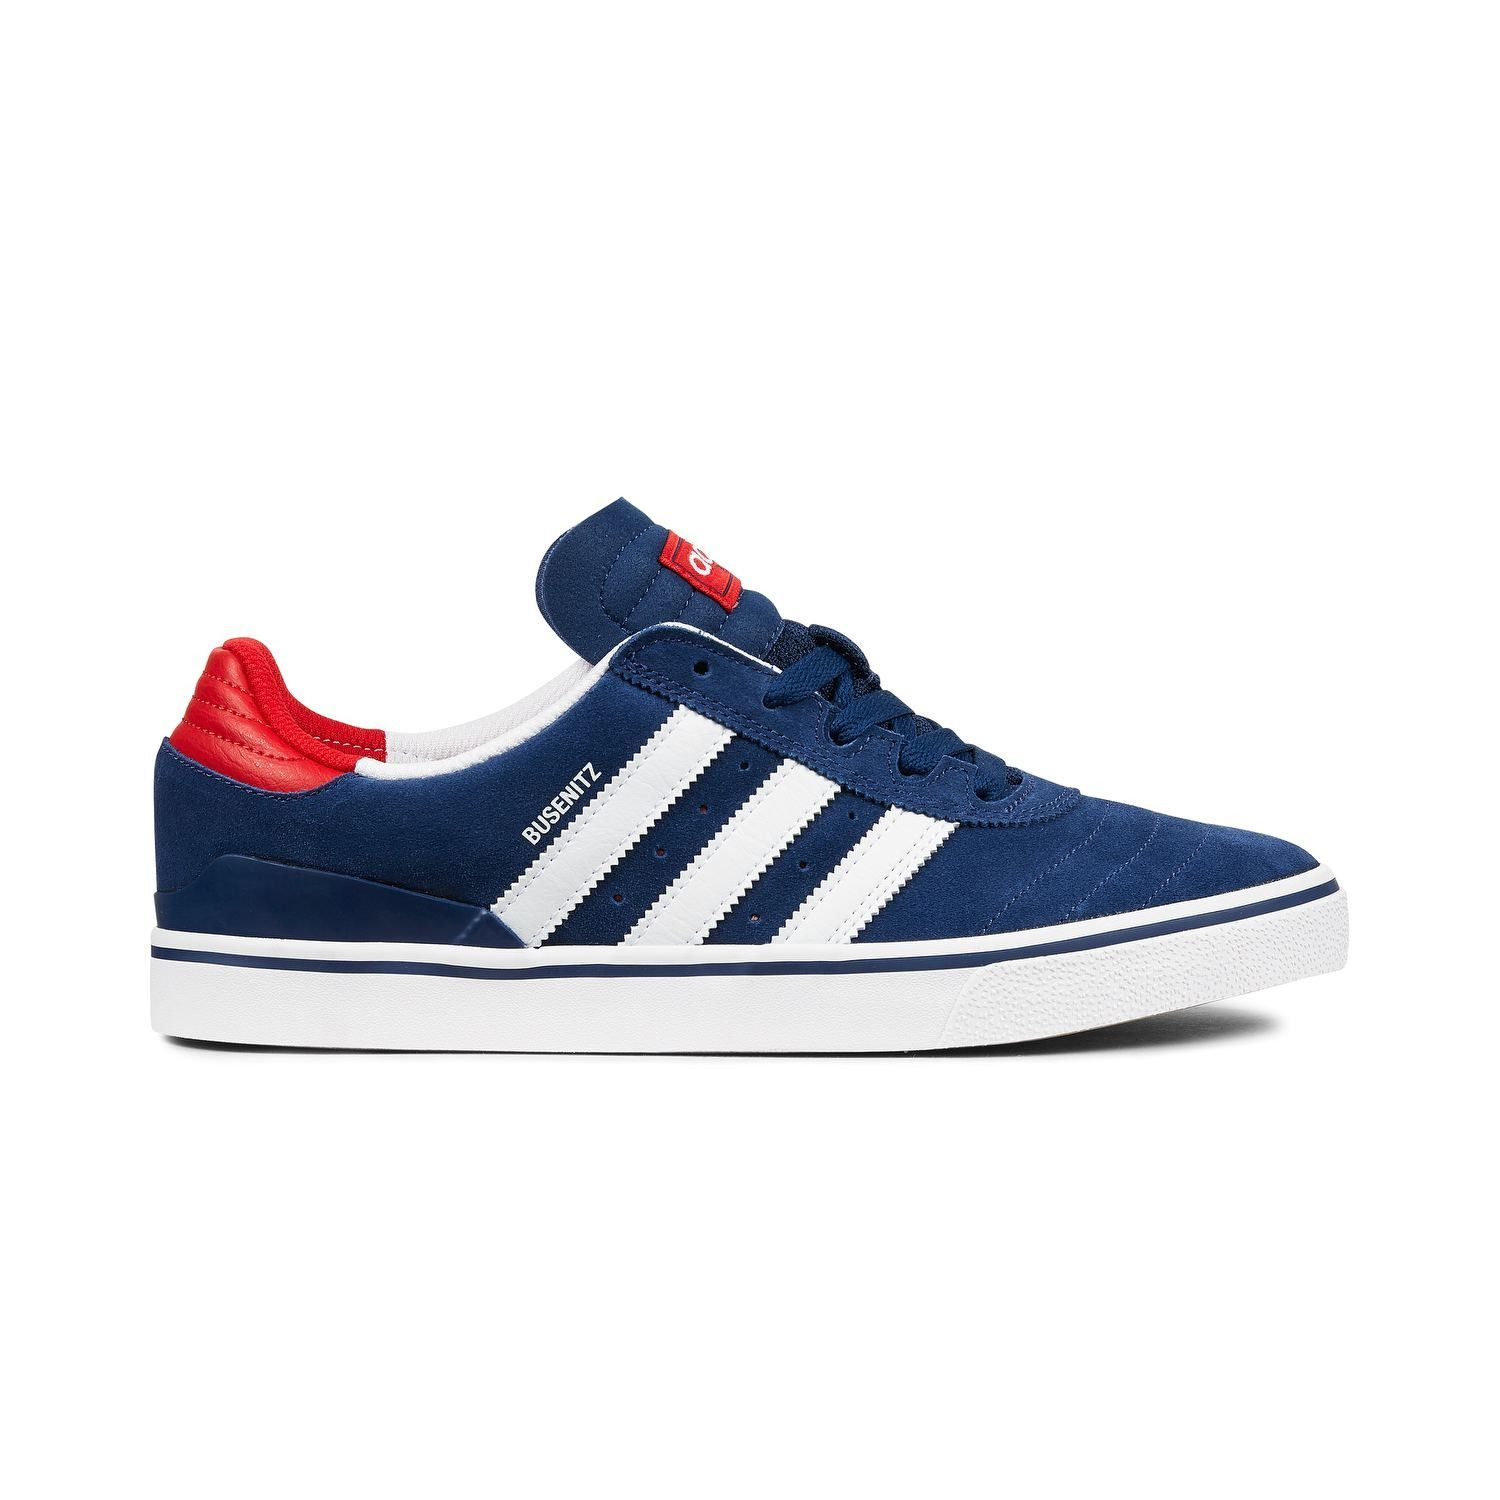 half off d2b21 155be Adidas Busenitz Vulc Adv Shoes - Mystery Blue White Scarlet